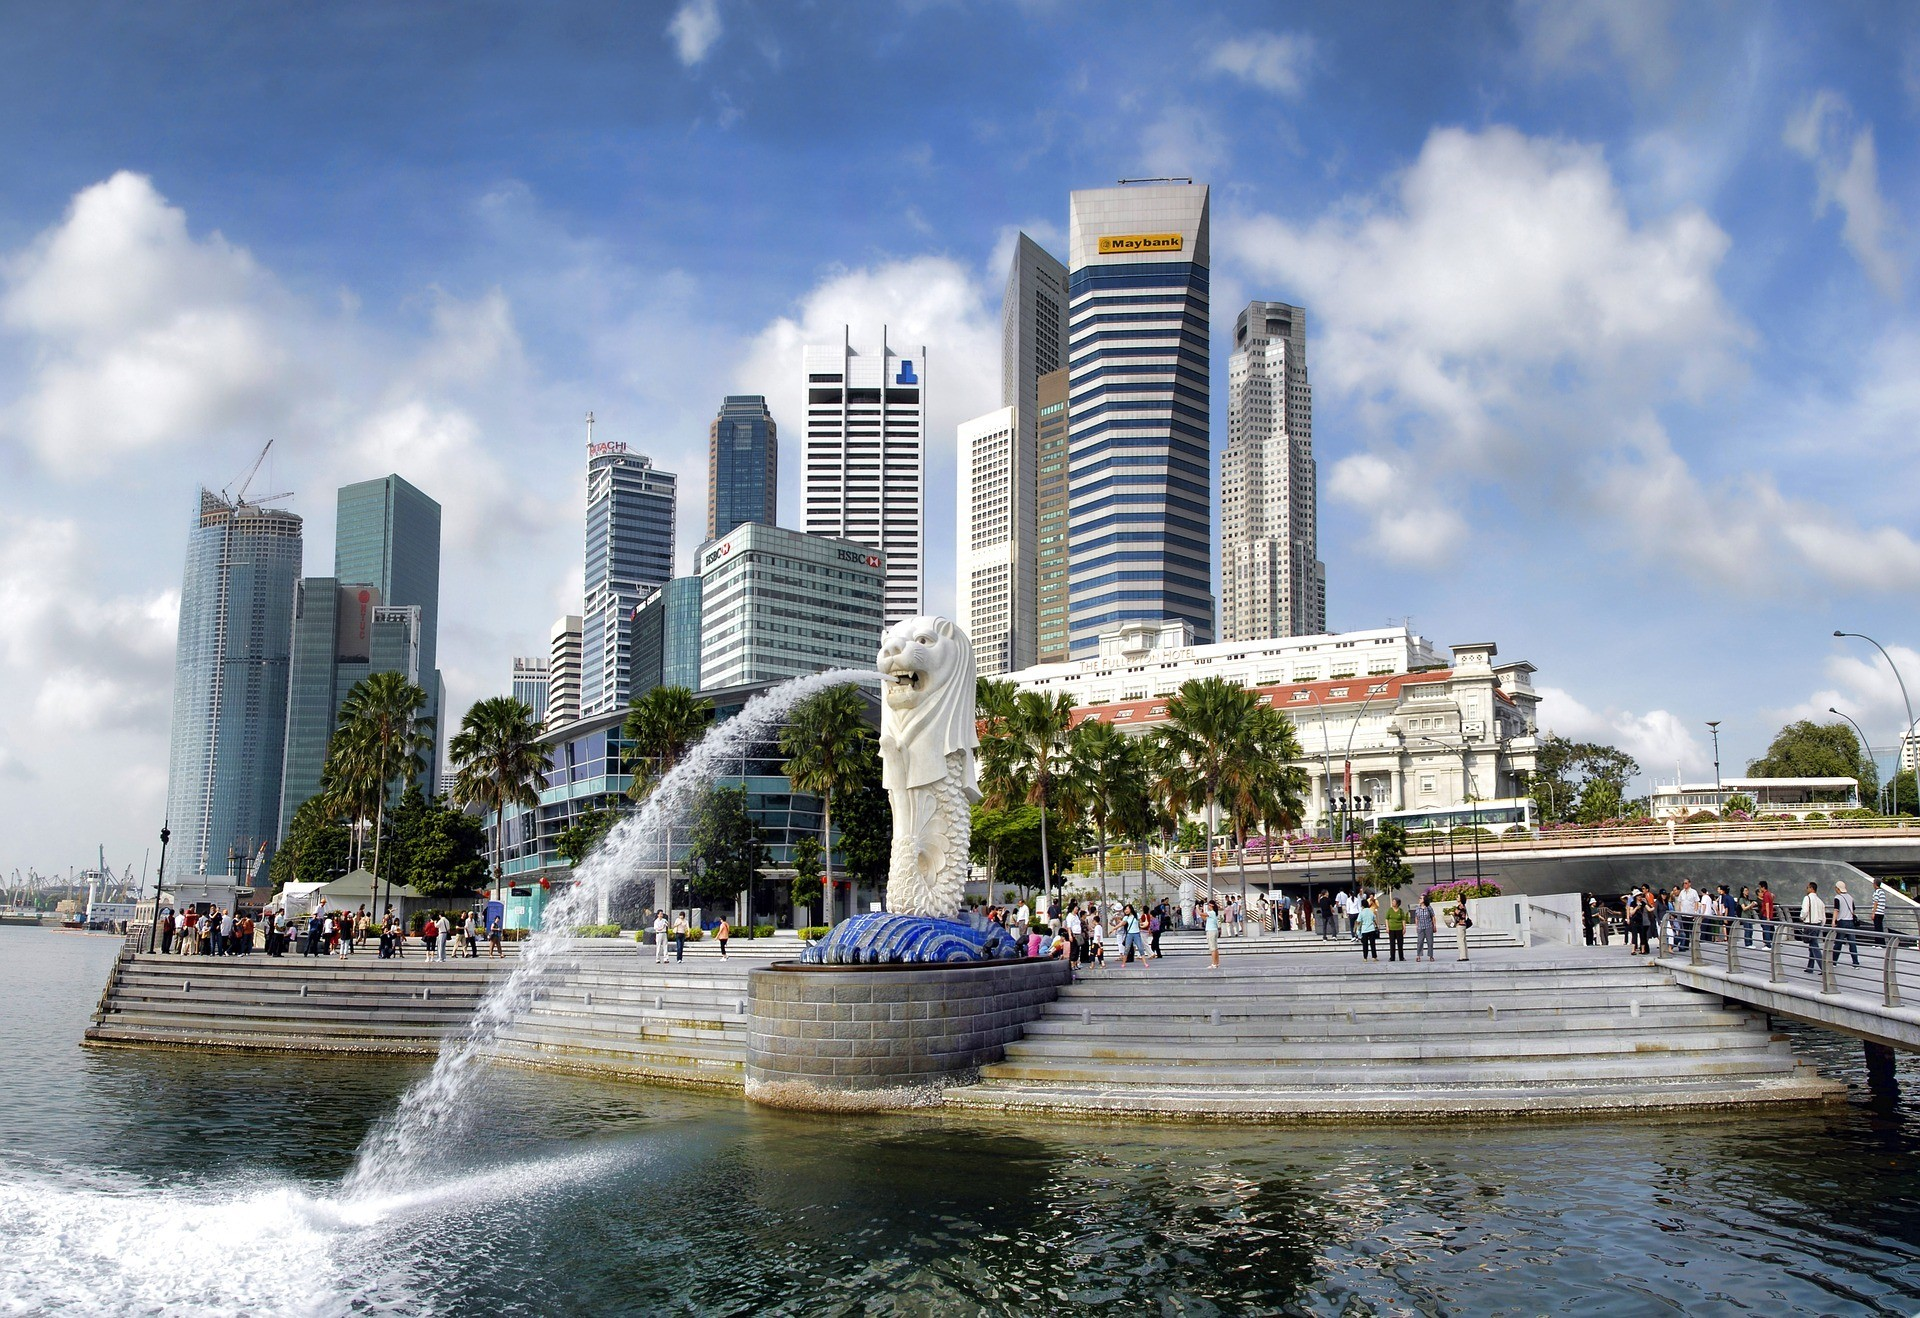 Fountain on the water in Singapore